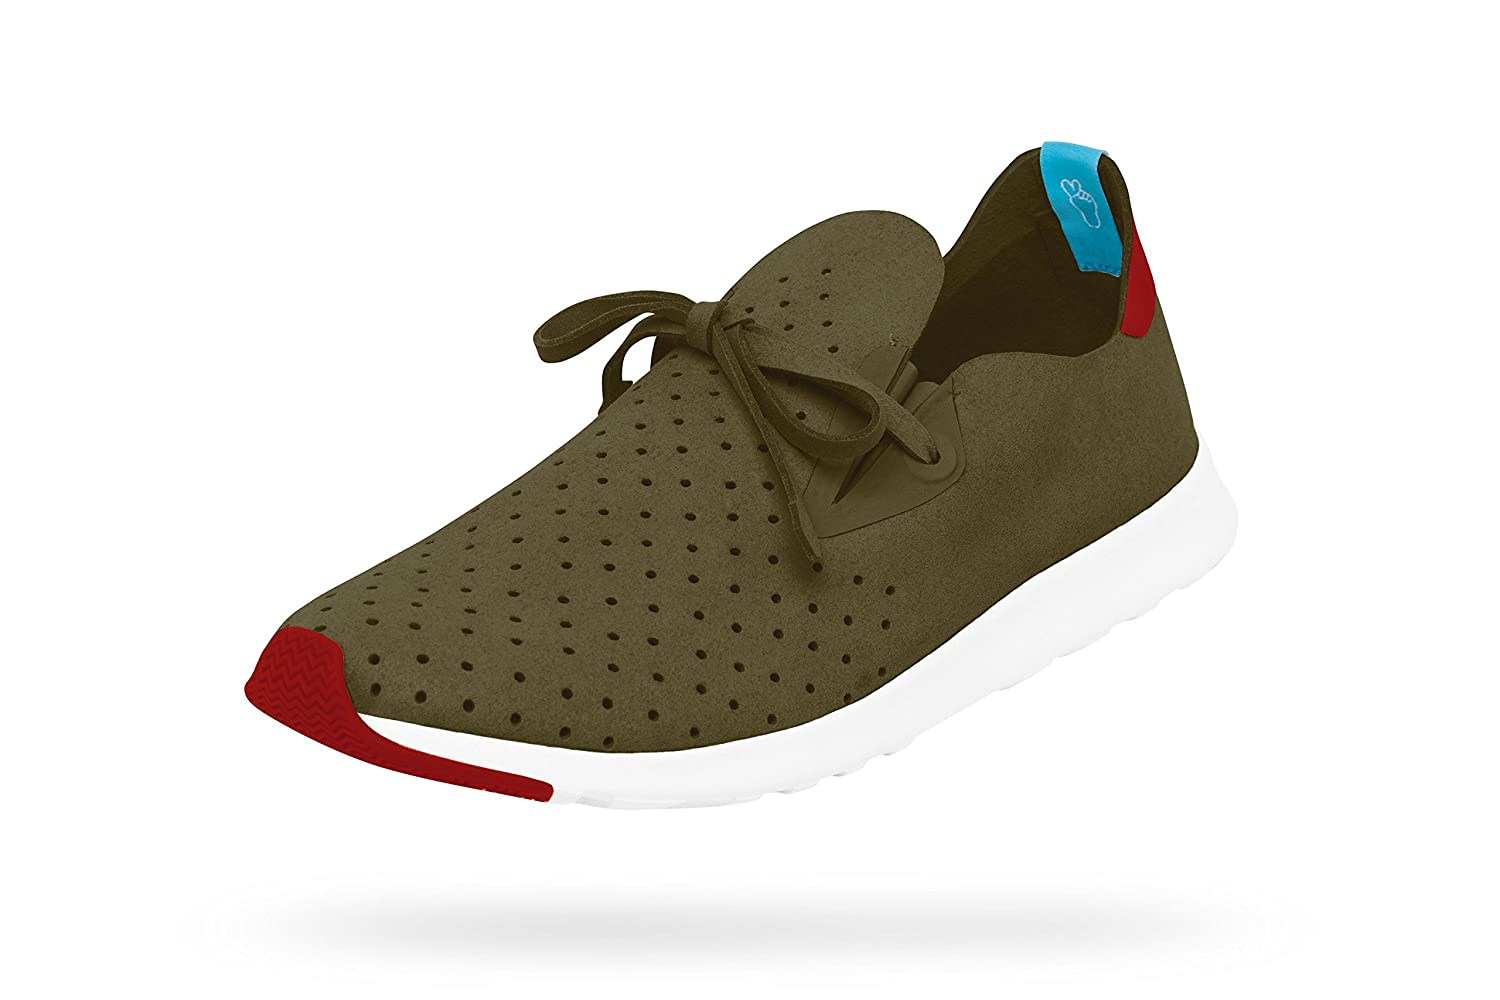 Native Unisex Apollo Moc Fashion Sneaker. B01831YYTK 10.5 D(M) US|Rookie Green/ Rover Red/ Shell White/ Rover Rubber